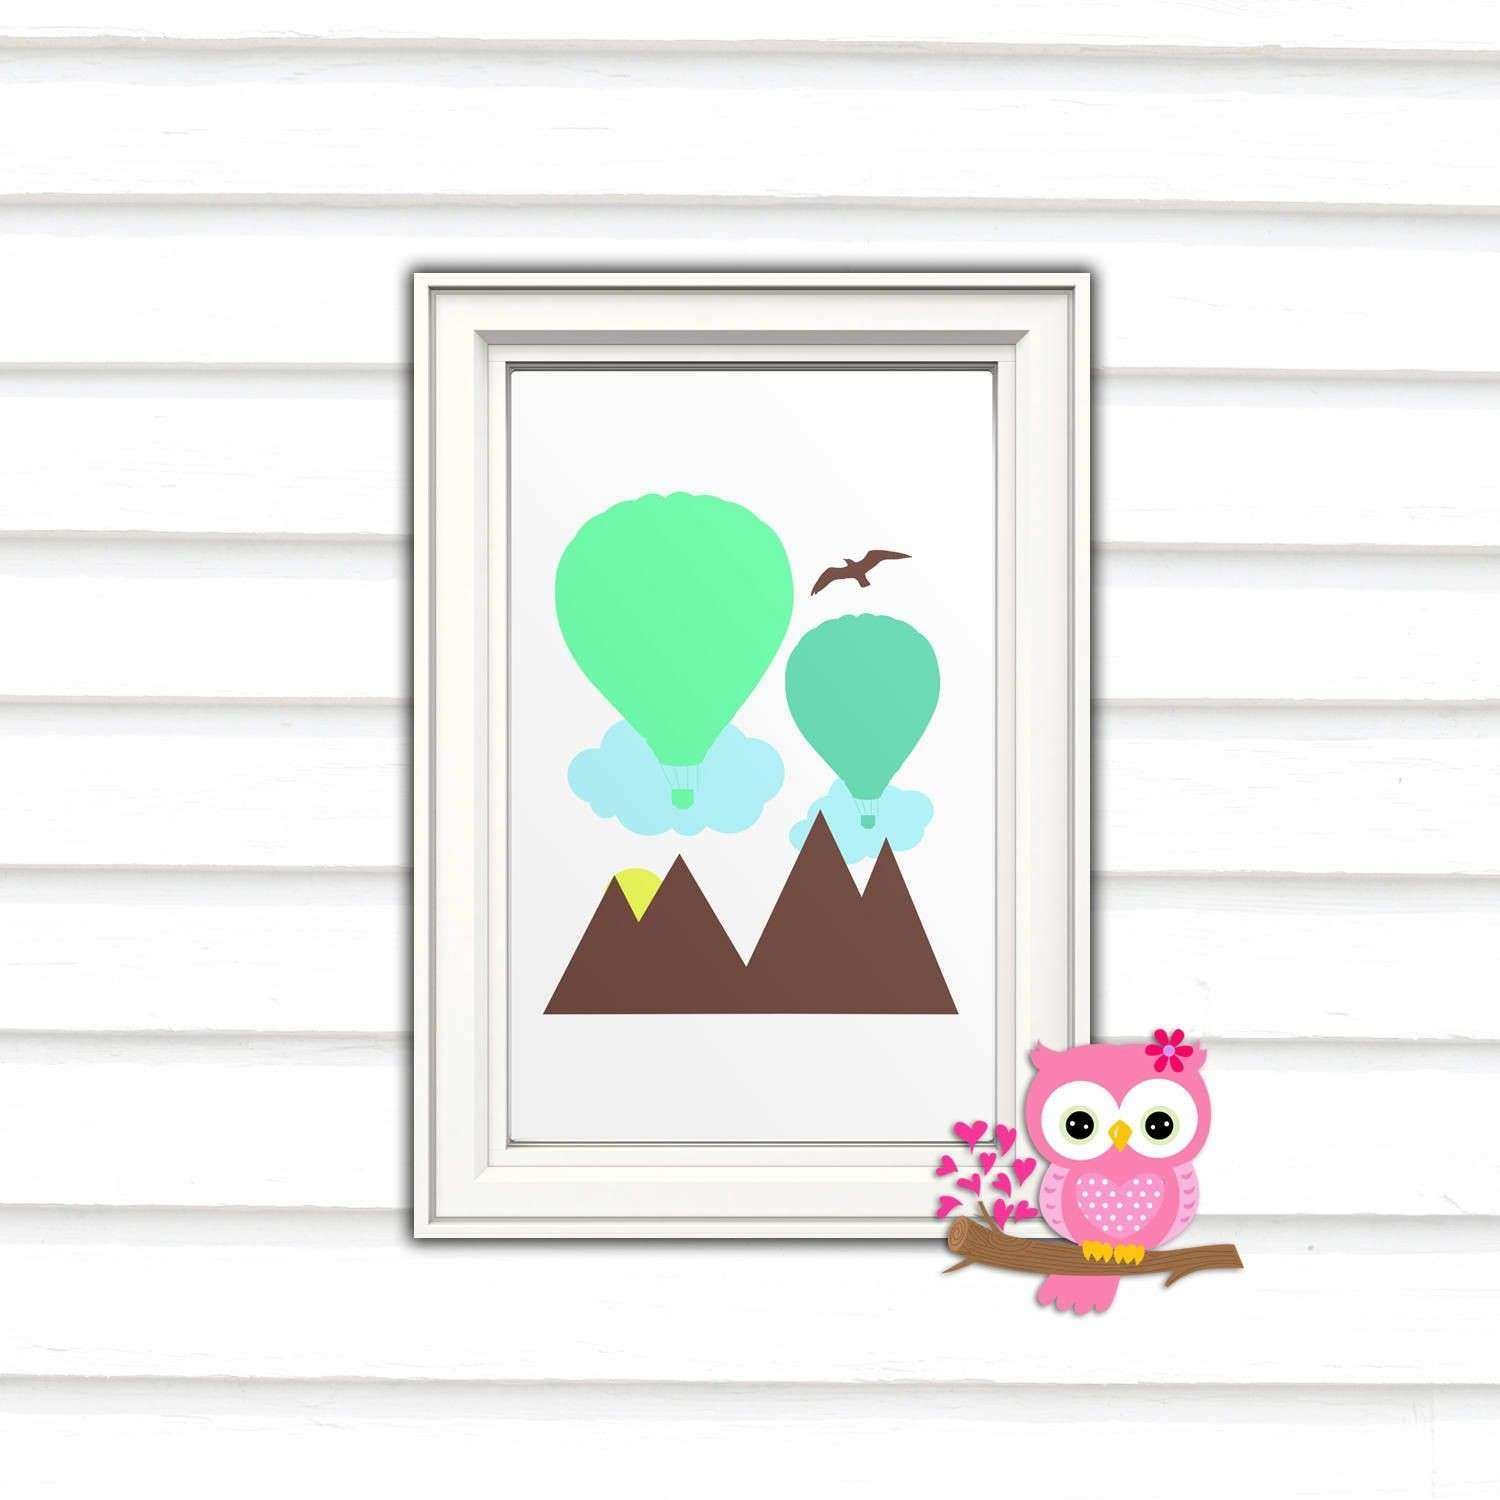 Balloon And Mountains Unique Wall Art Print HQ Posters Nursery